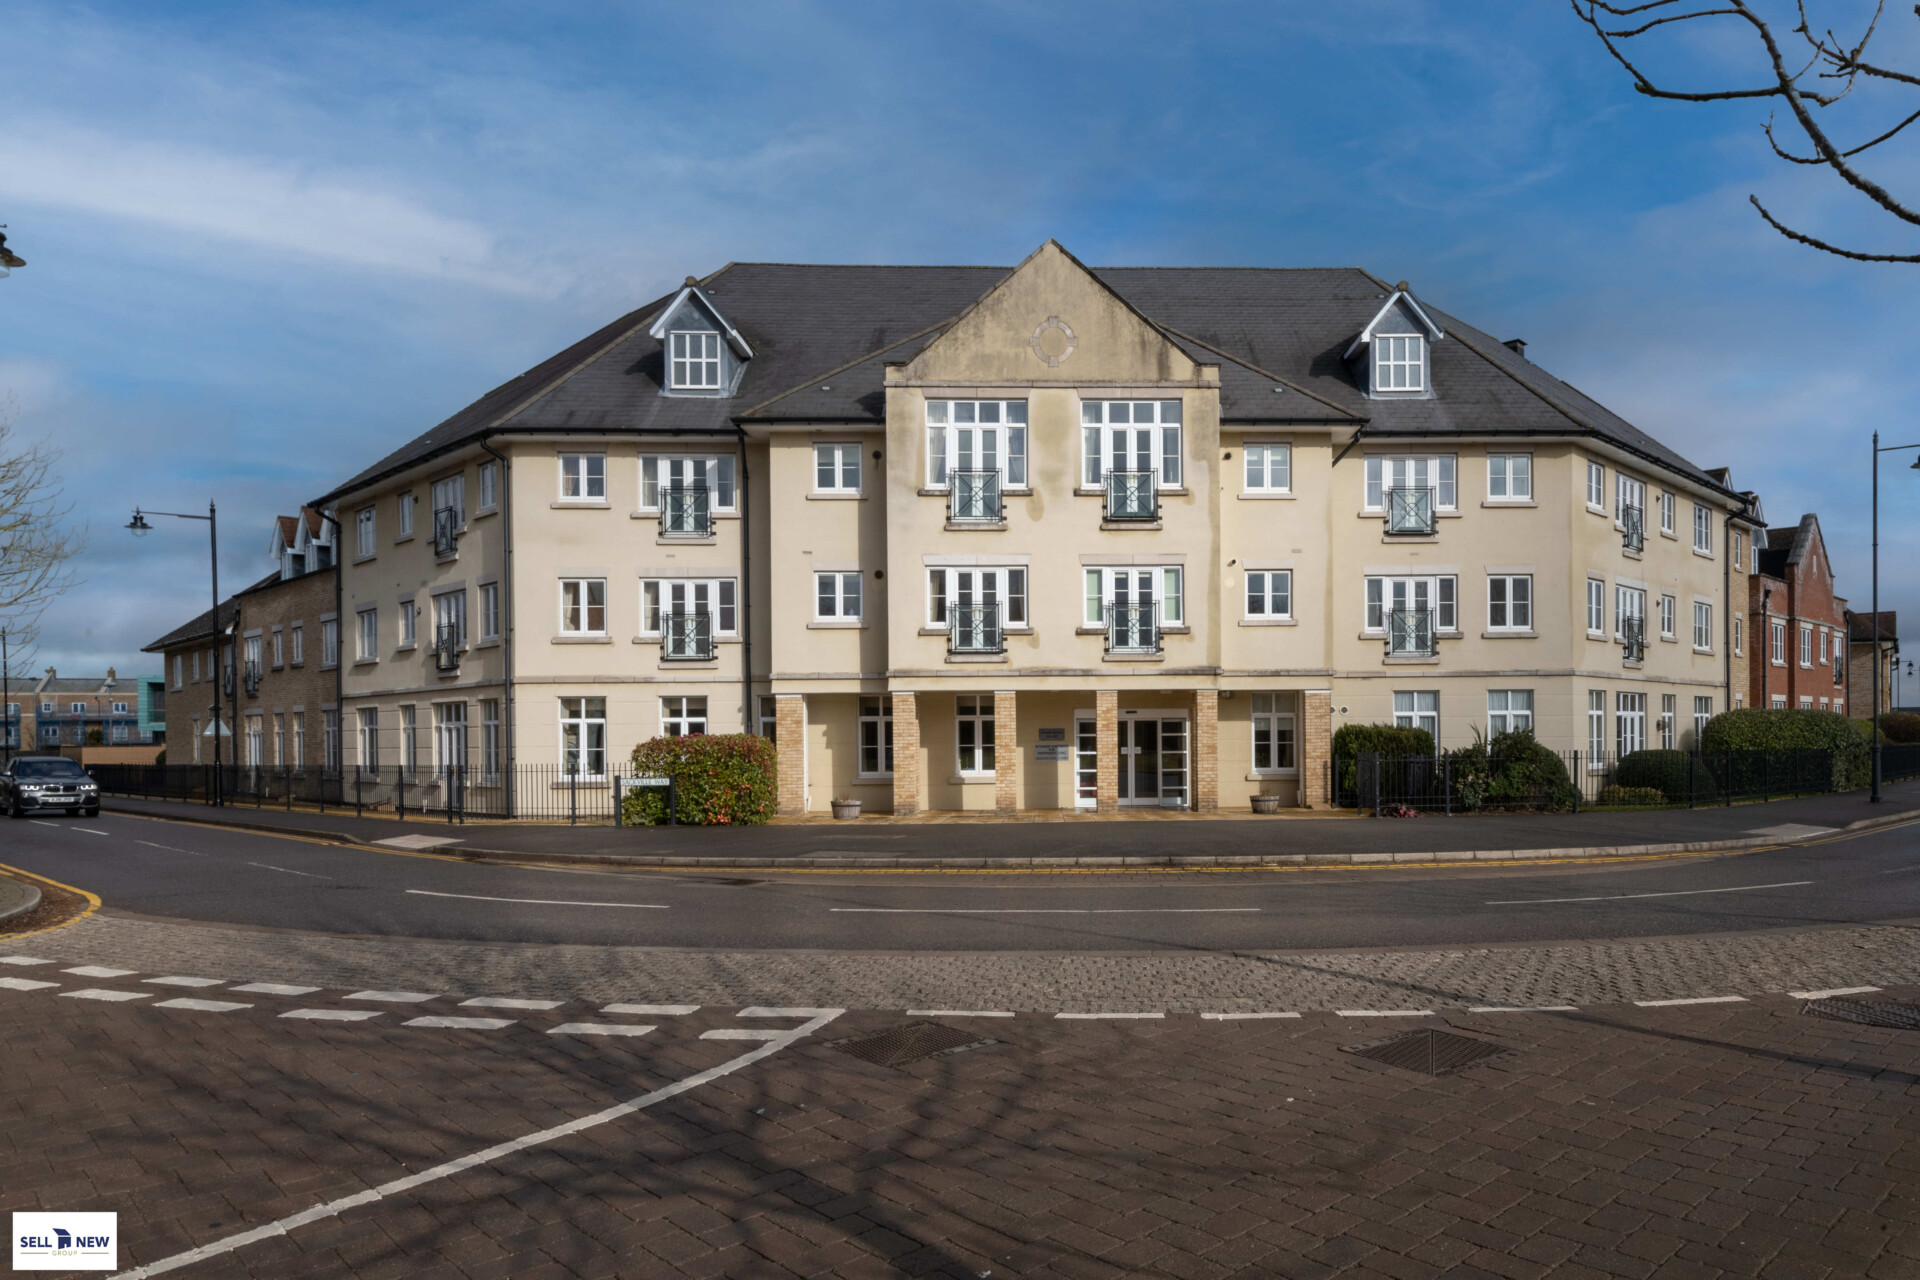 Flat 18 Cavendish court Camborune CB23 6HB – Spacious one bedroom retirement apartment ideally located in heart of Cambourne